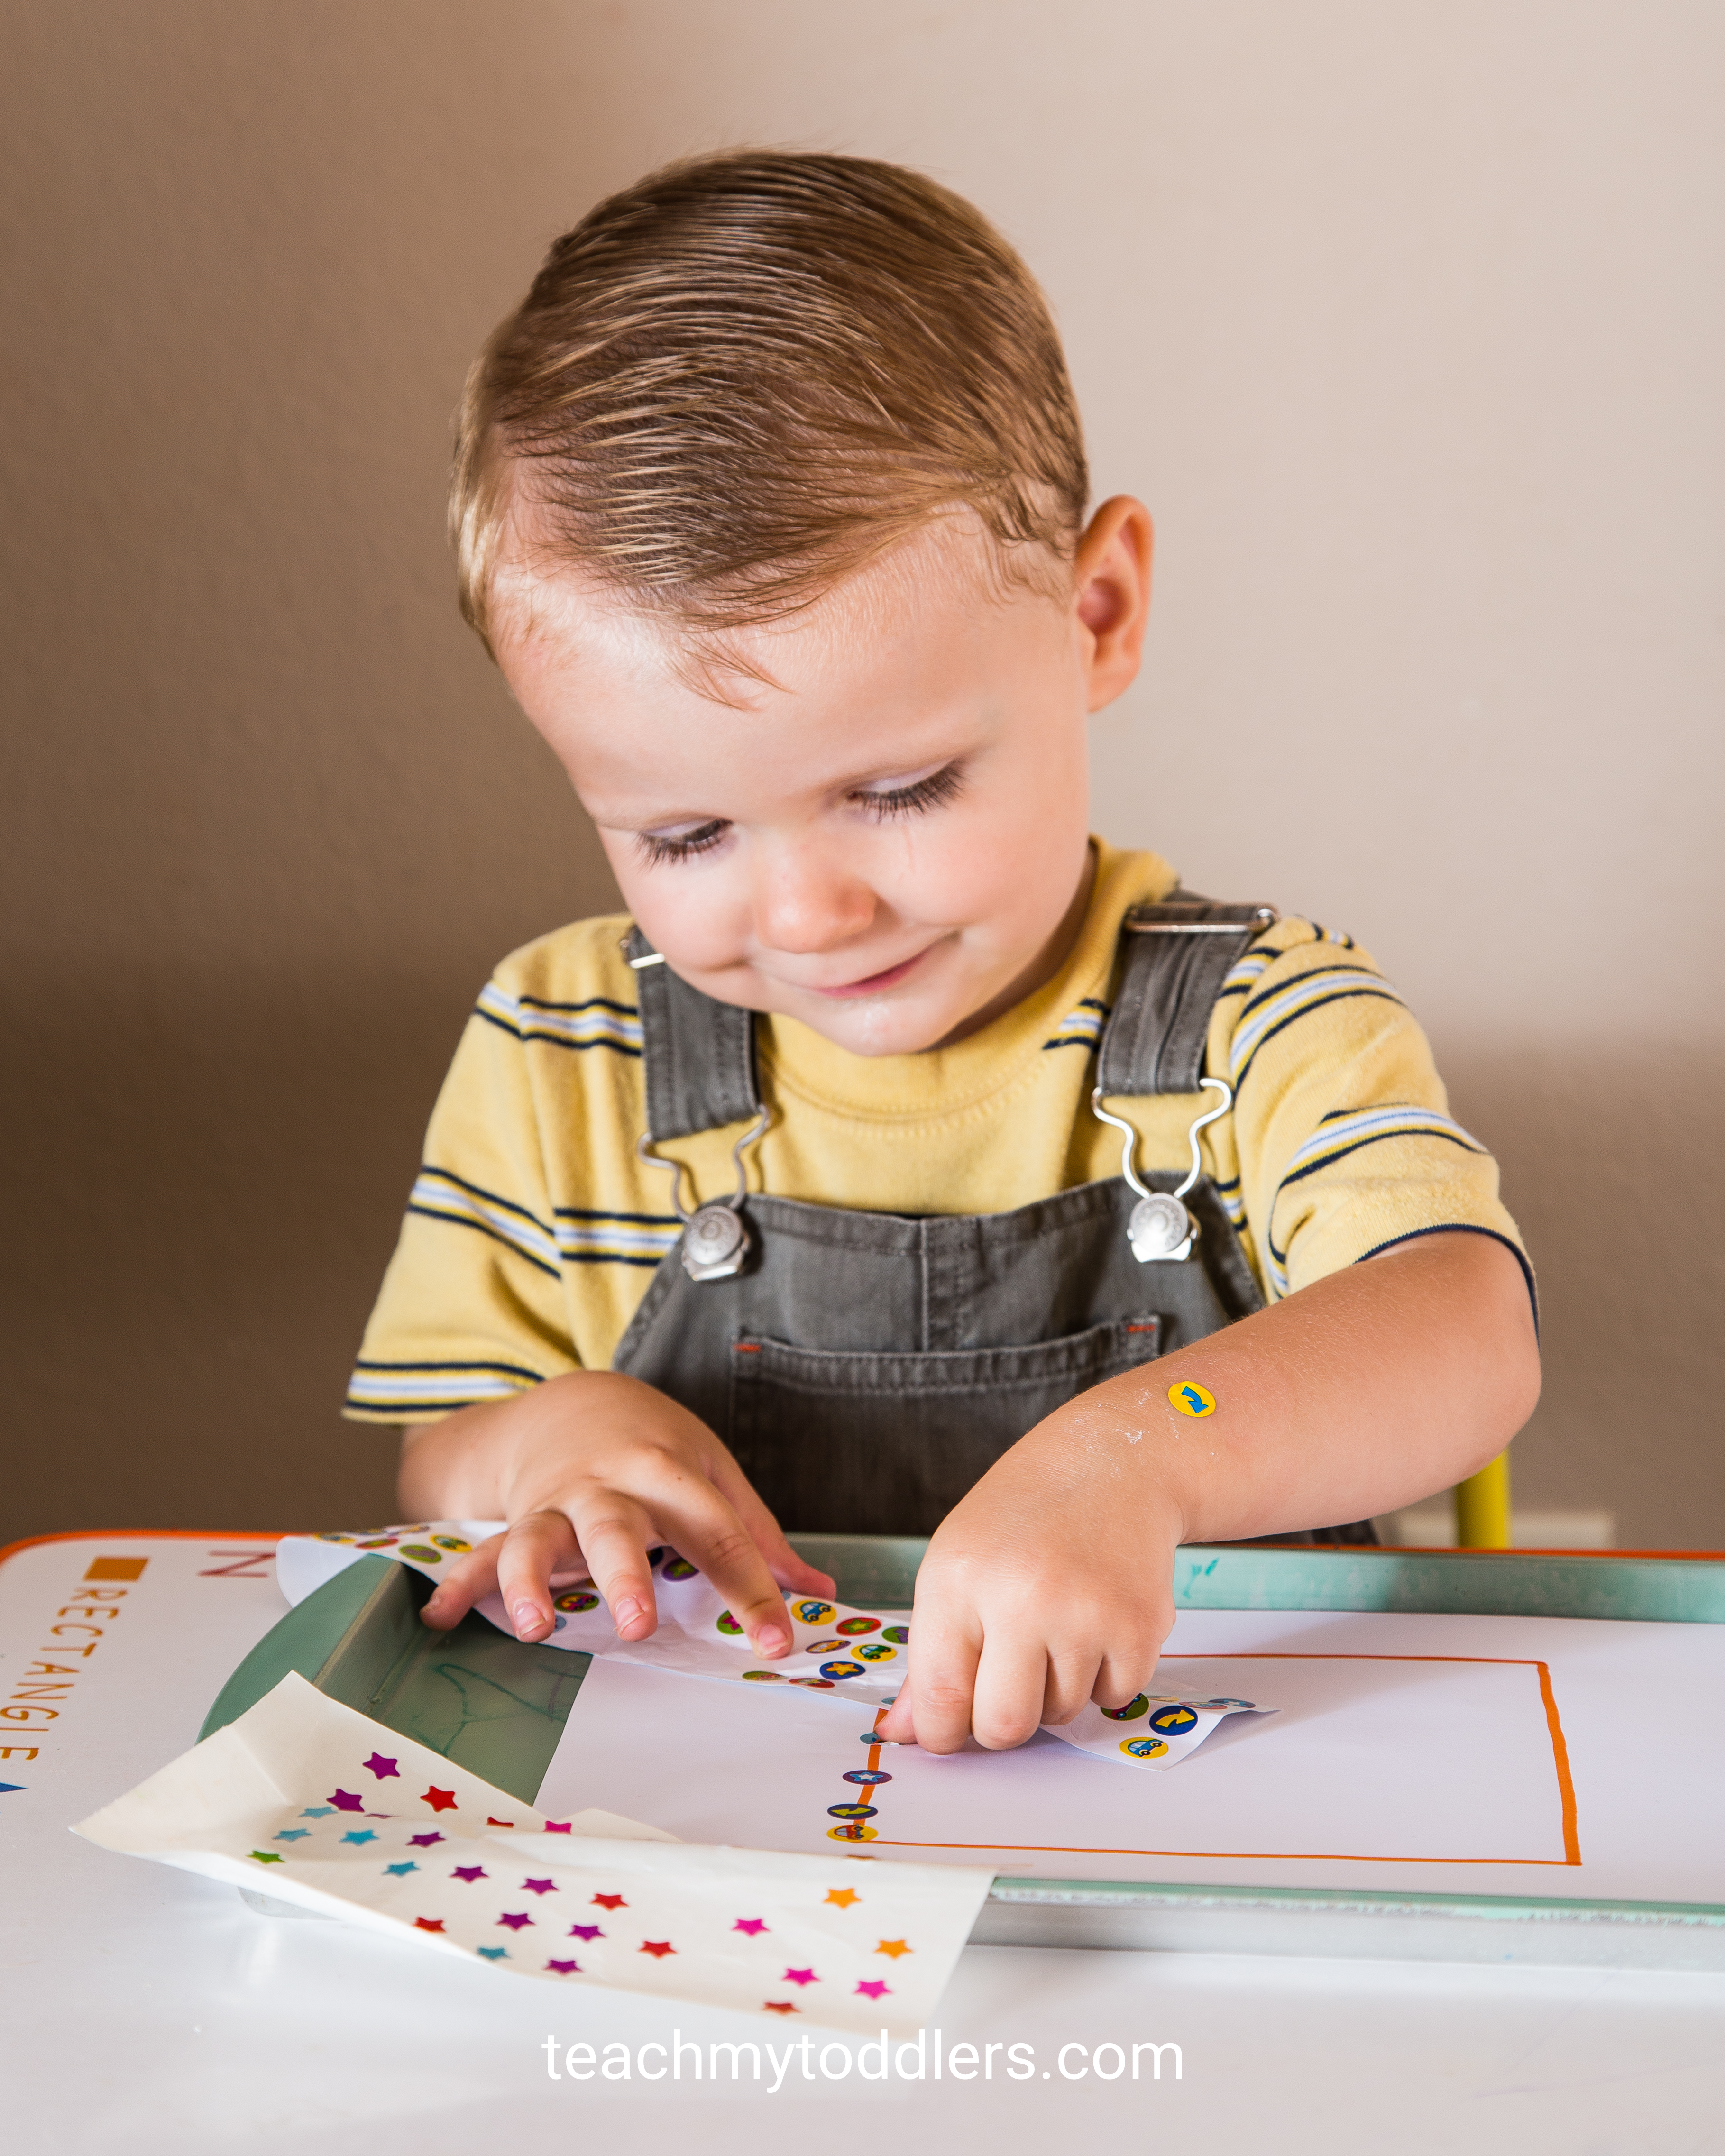 These square trays are so exciting to use to teach your toddlers shapes